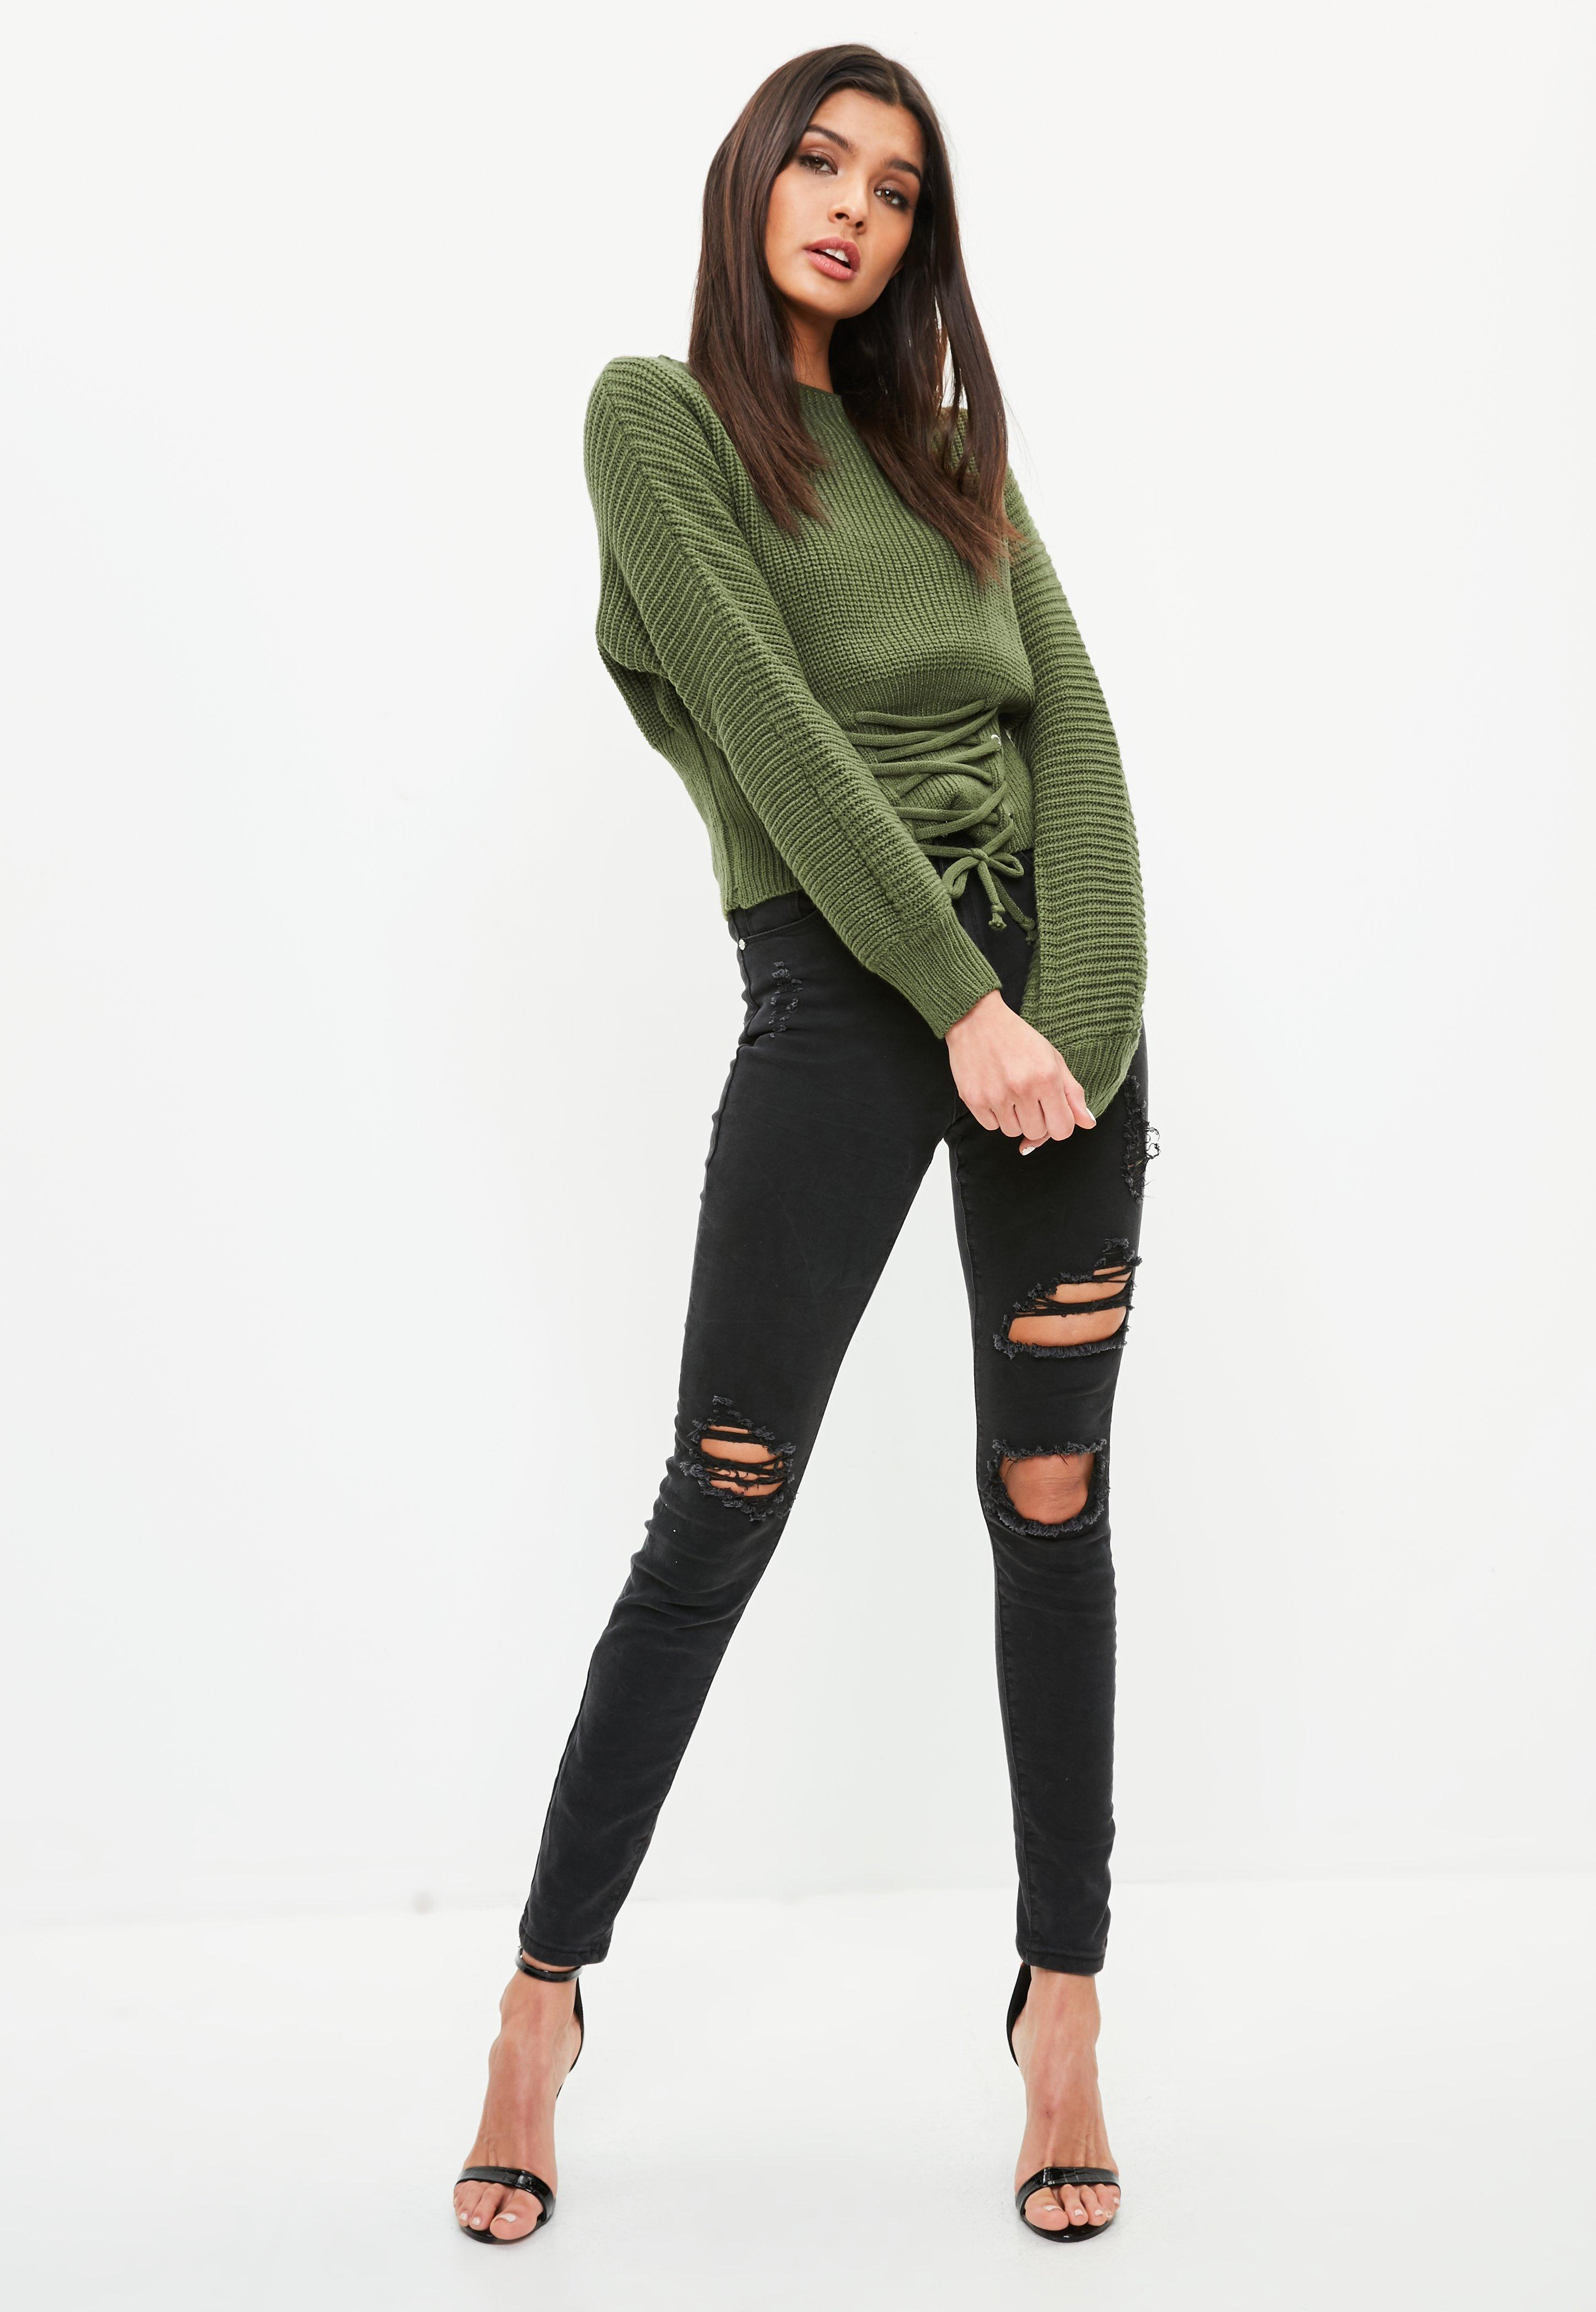 ec62b945fb0 Lyst - Missguided Green Lace Up Corset Sweater in Green